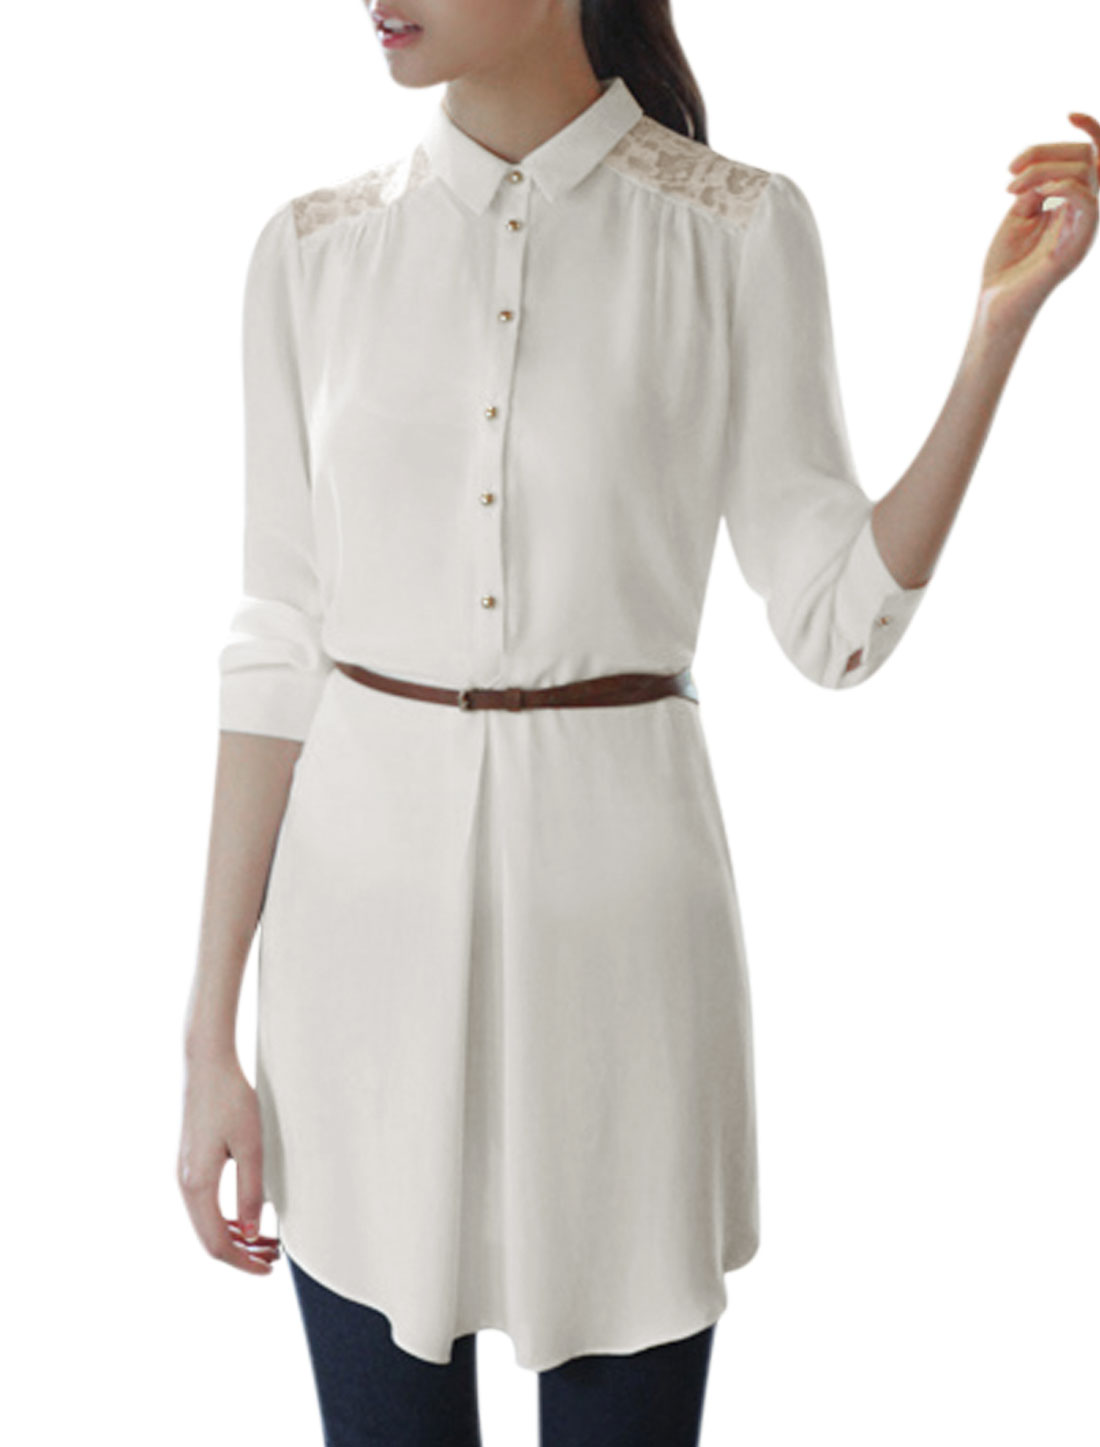 Woman Point Collar 1/2 Placket Lace Patch Back Shirt Dress w Belt White L